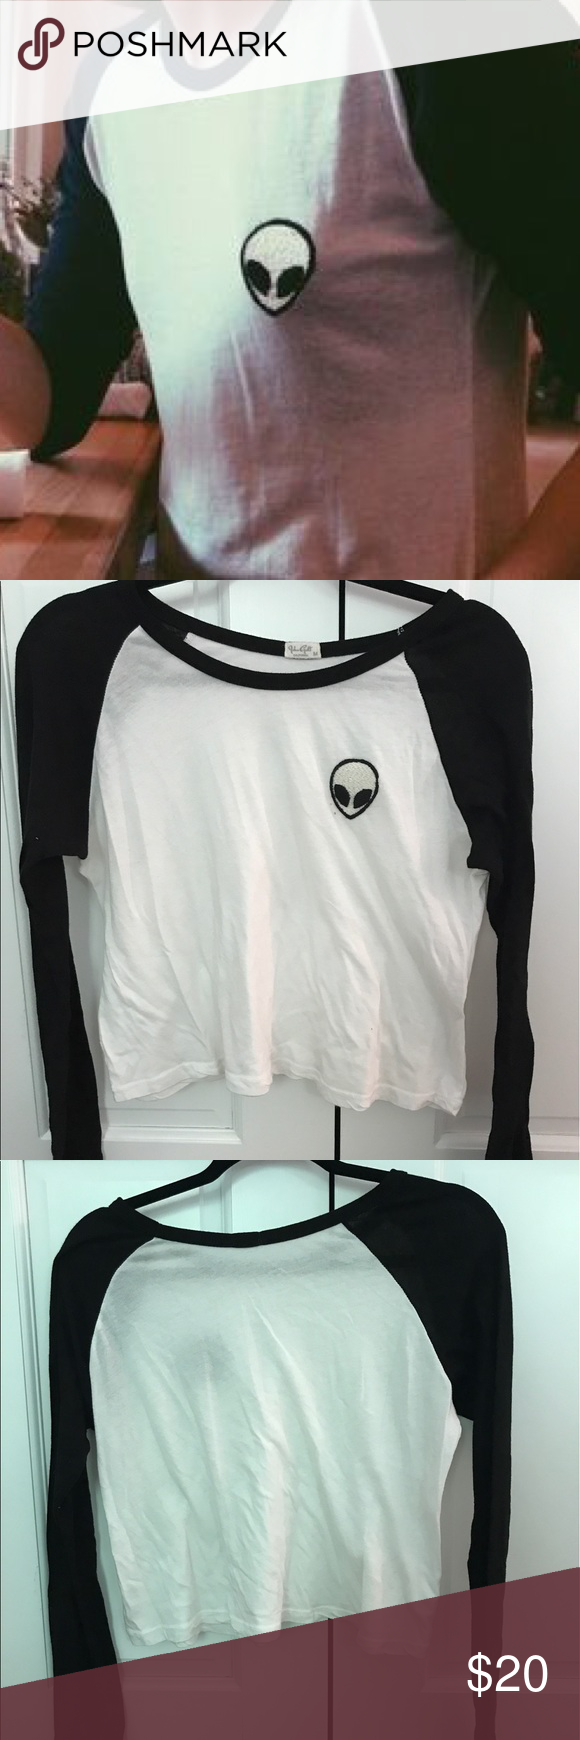 Brandy Melville Alien Patch Baseball Tee Super soft John Galt long sleeved shirt. Never worn Brandy Melville Tops Tees - Long Sleeve